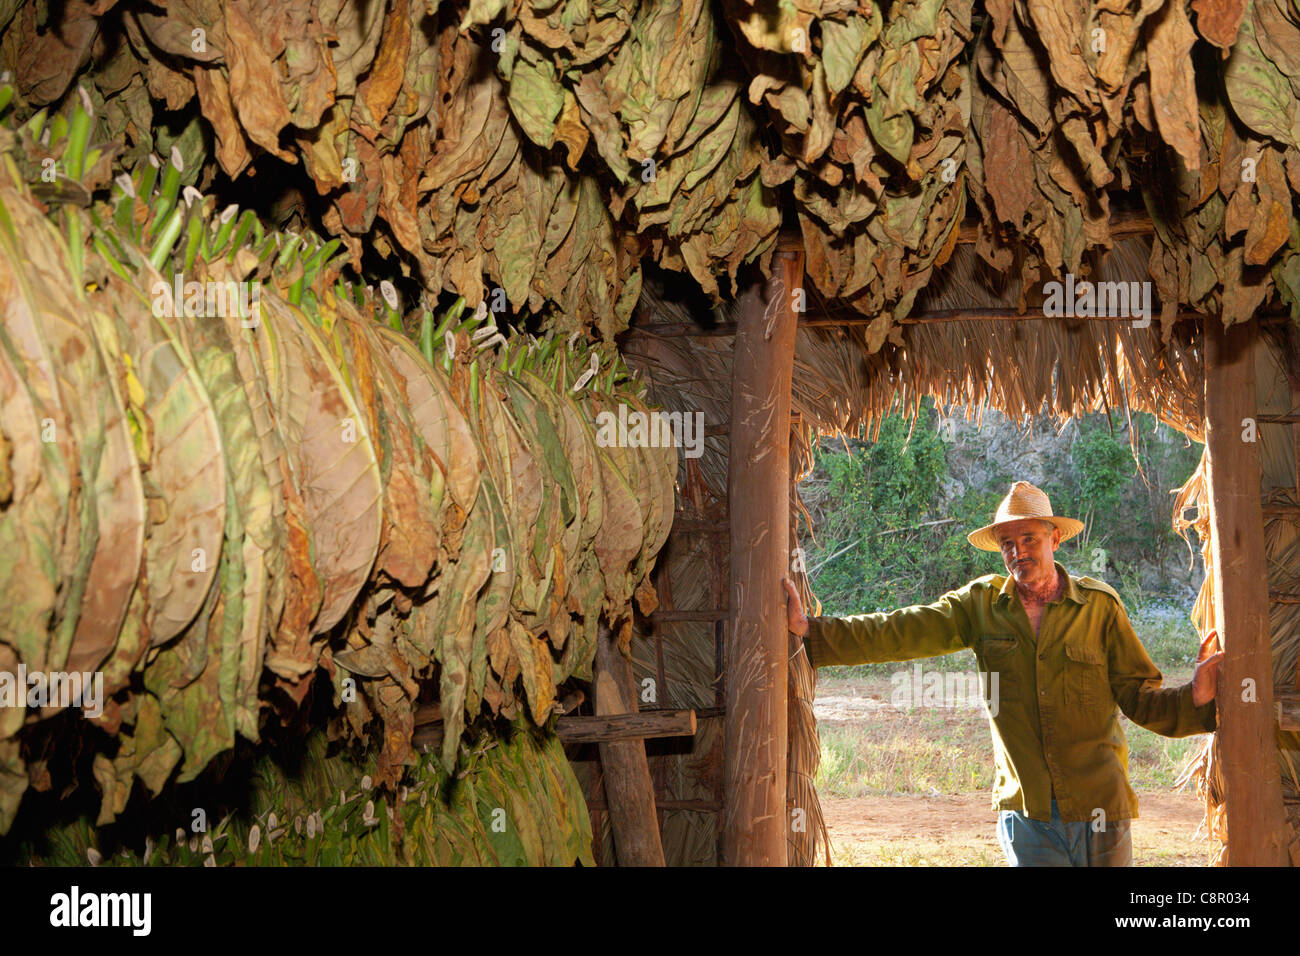 PINAR DEL RIO: VINALES TOBACCO FARM WITH DRYING TOBACCO LEAVES AND FARMER - Stock Image